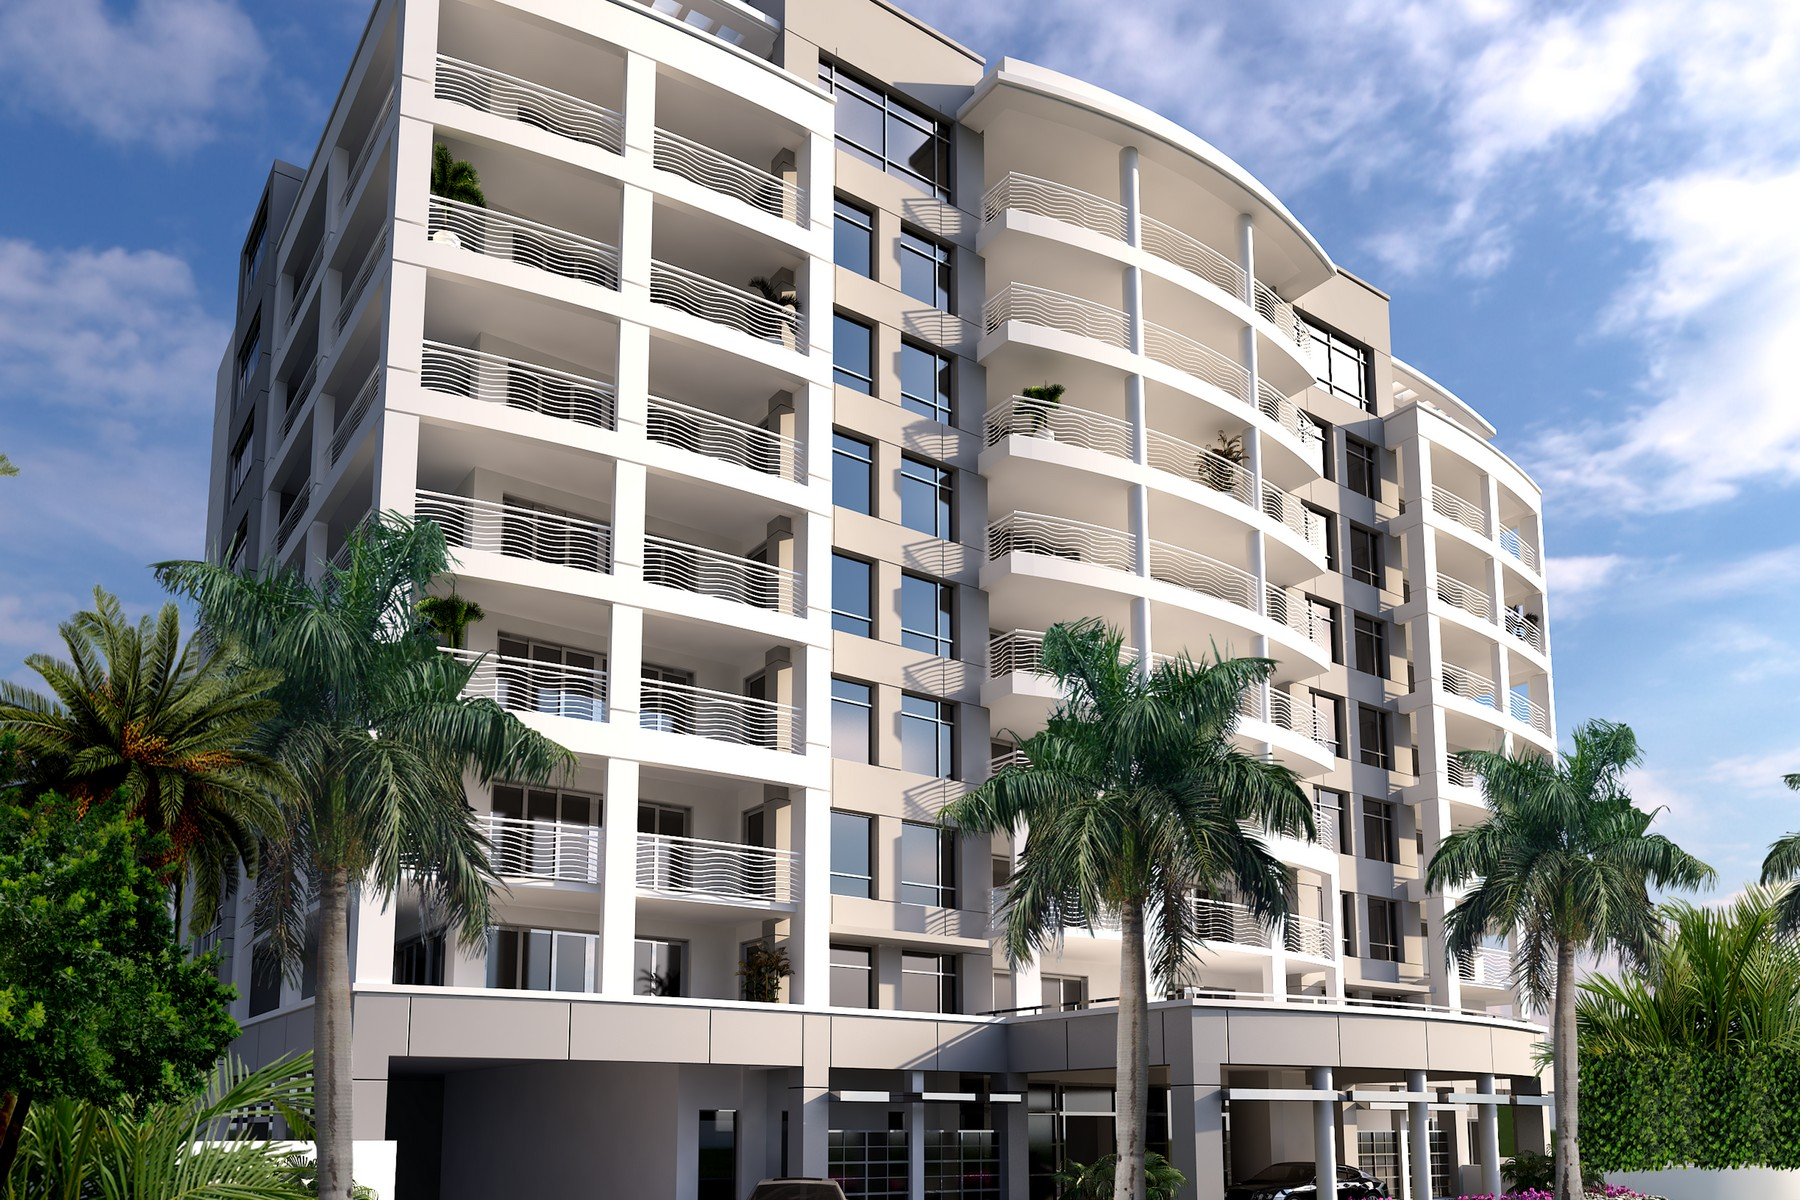 Condominium for Sale at 327 E Royal Palm Rd , 701, Boca Raton, FL 33432 327 E Royal Palm Rd 701 Boca Raton, Florida 33432 United States